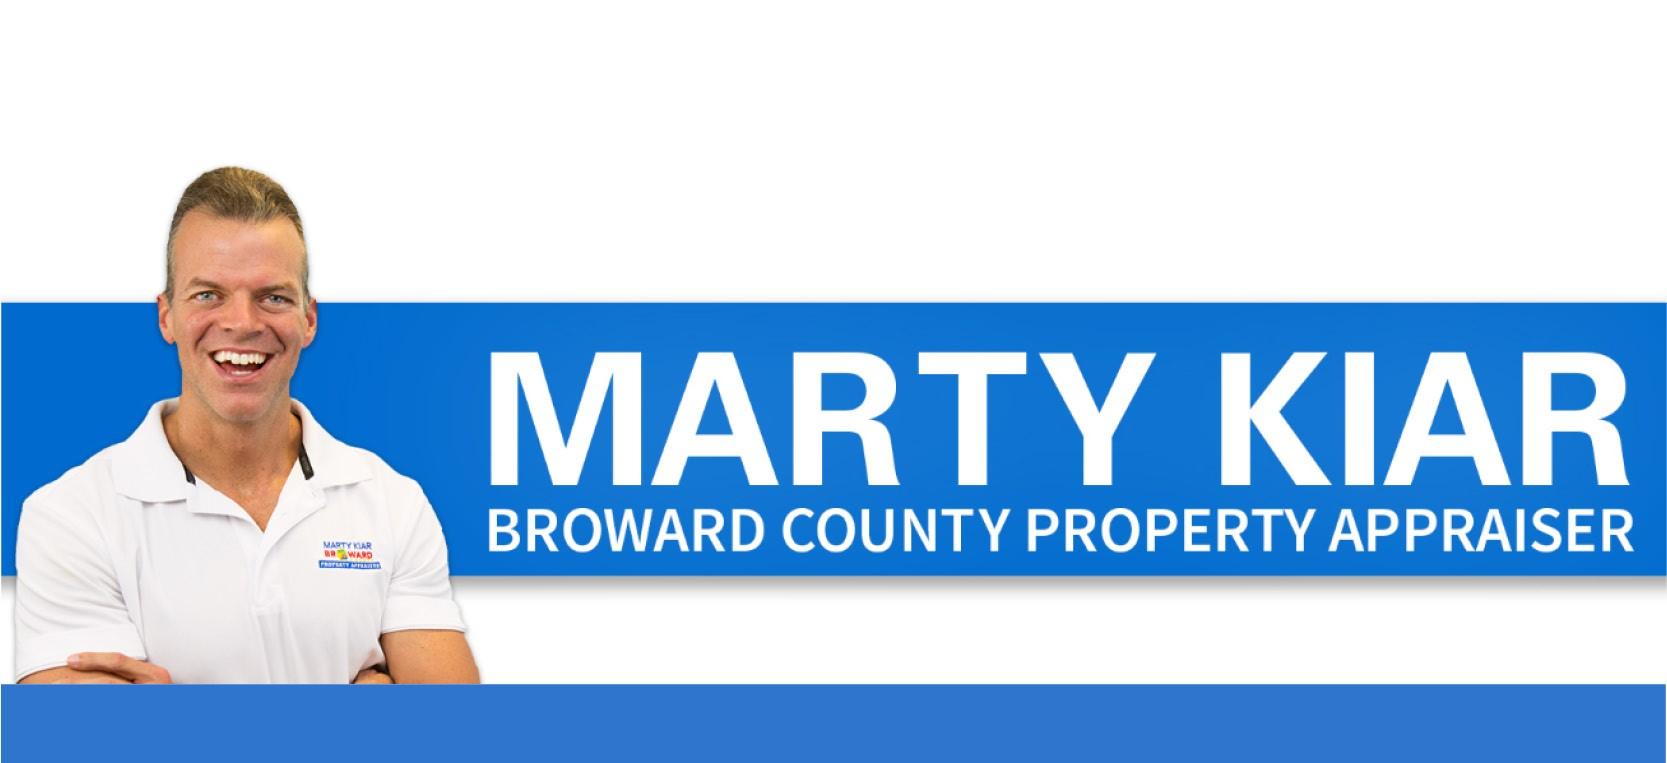 Exemptions Express and Broward Counts